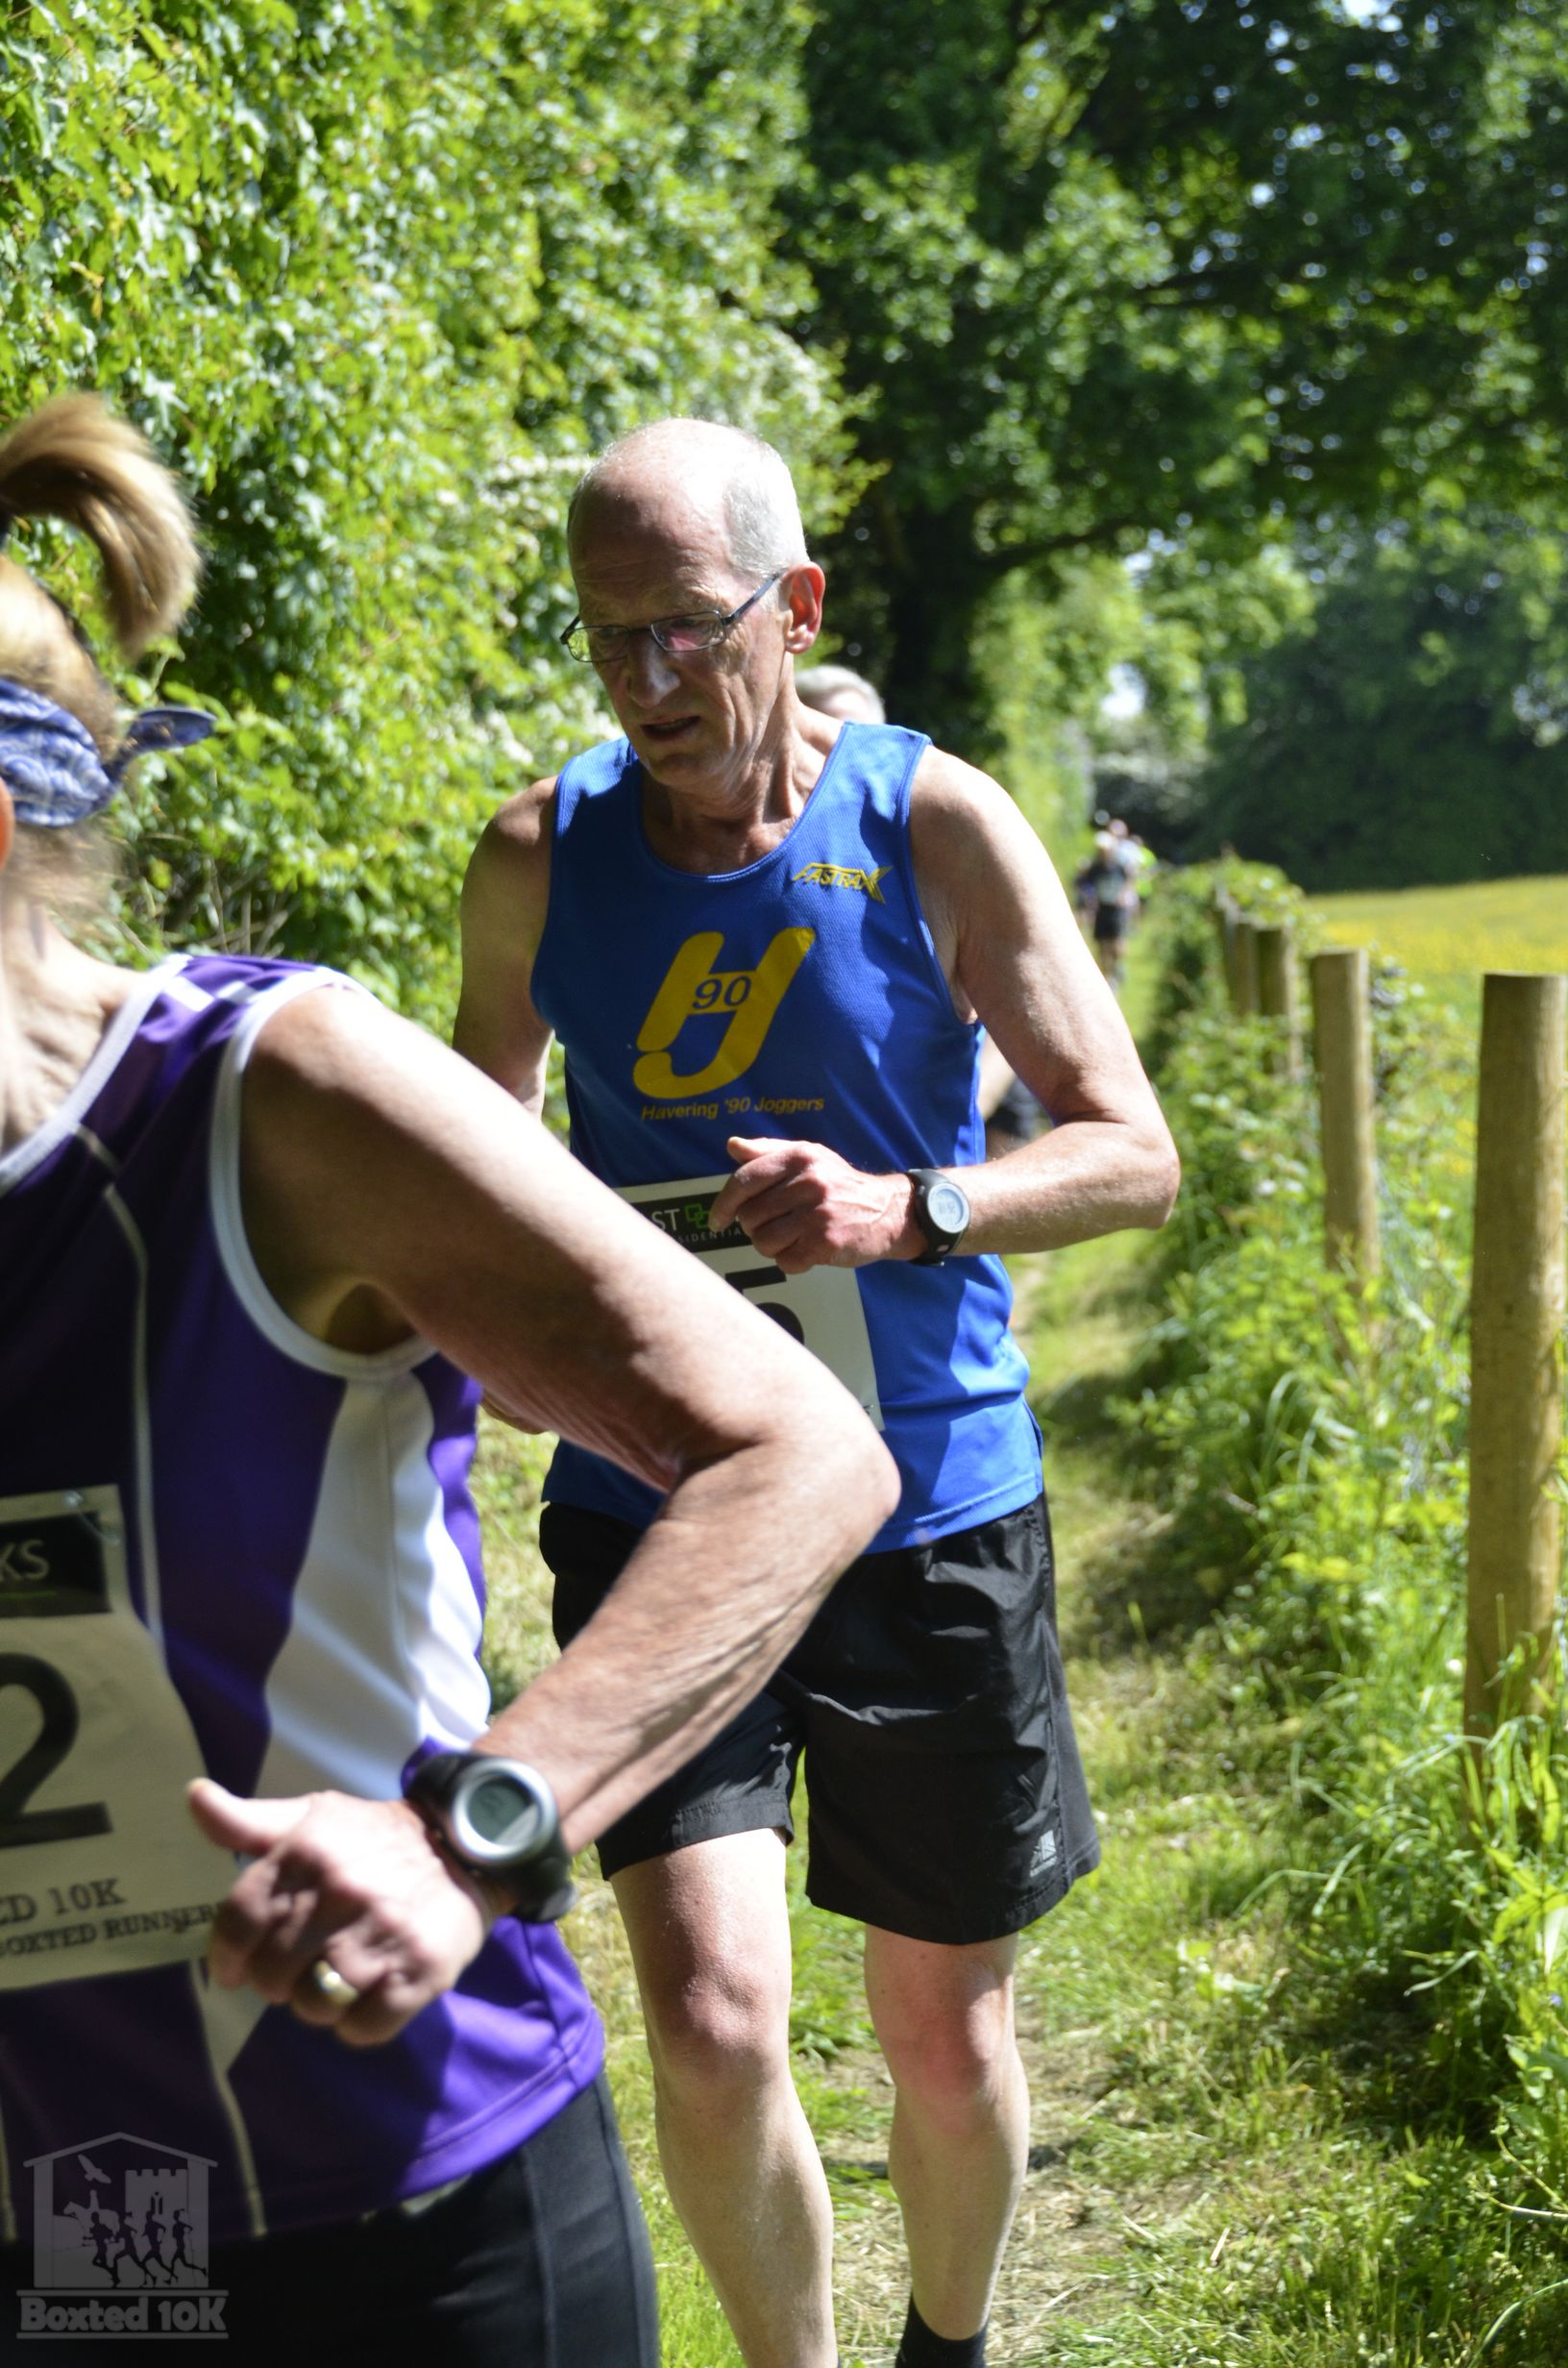 Boxted10k-00216